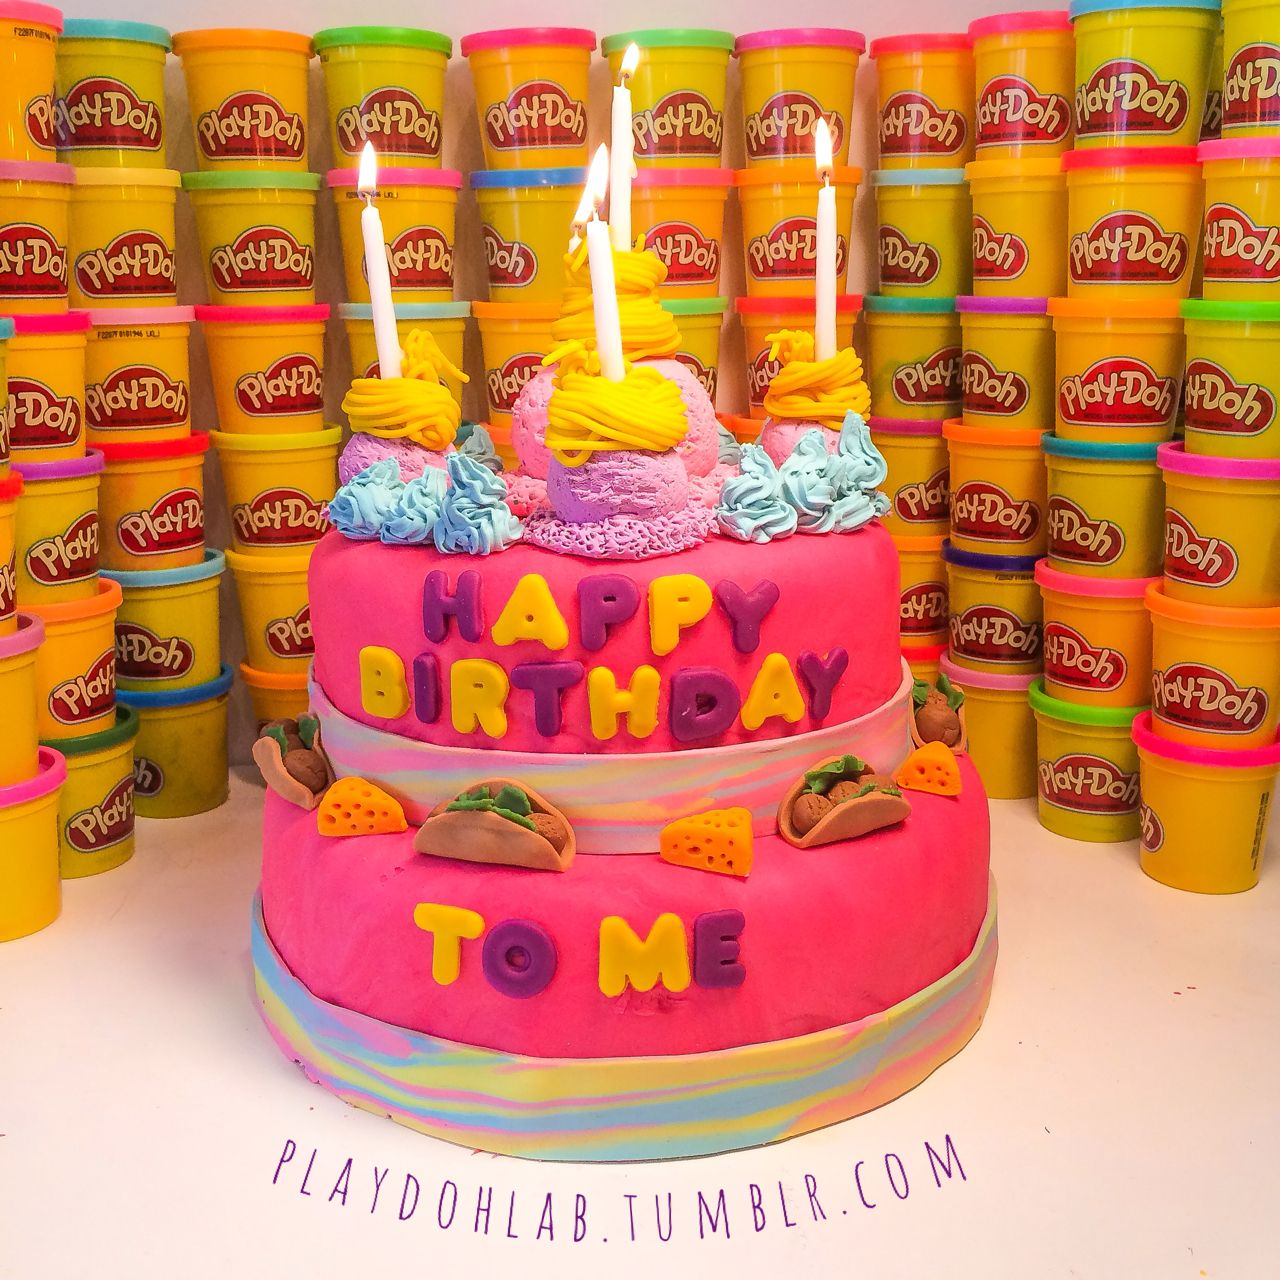 Happy birthday to me my dream playdoh cake pink for Play doh cuisine